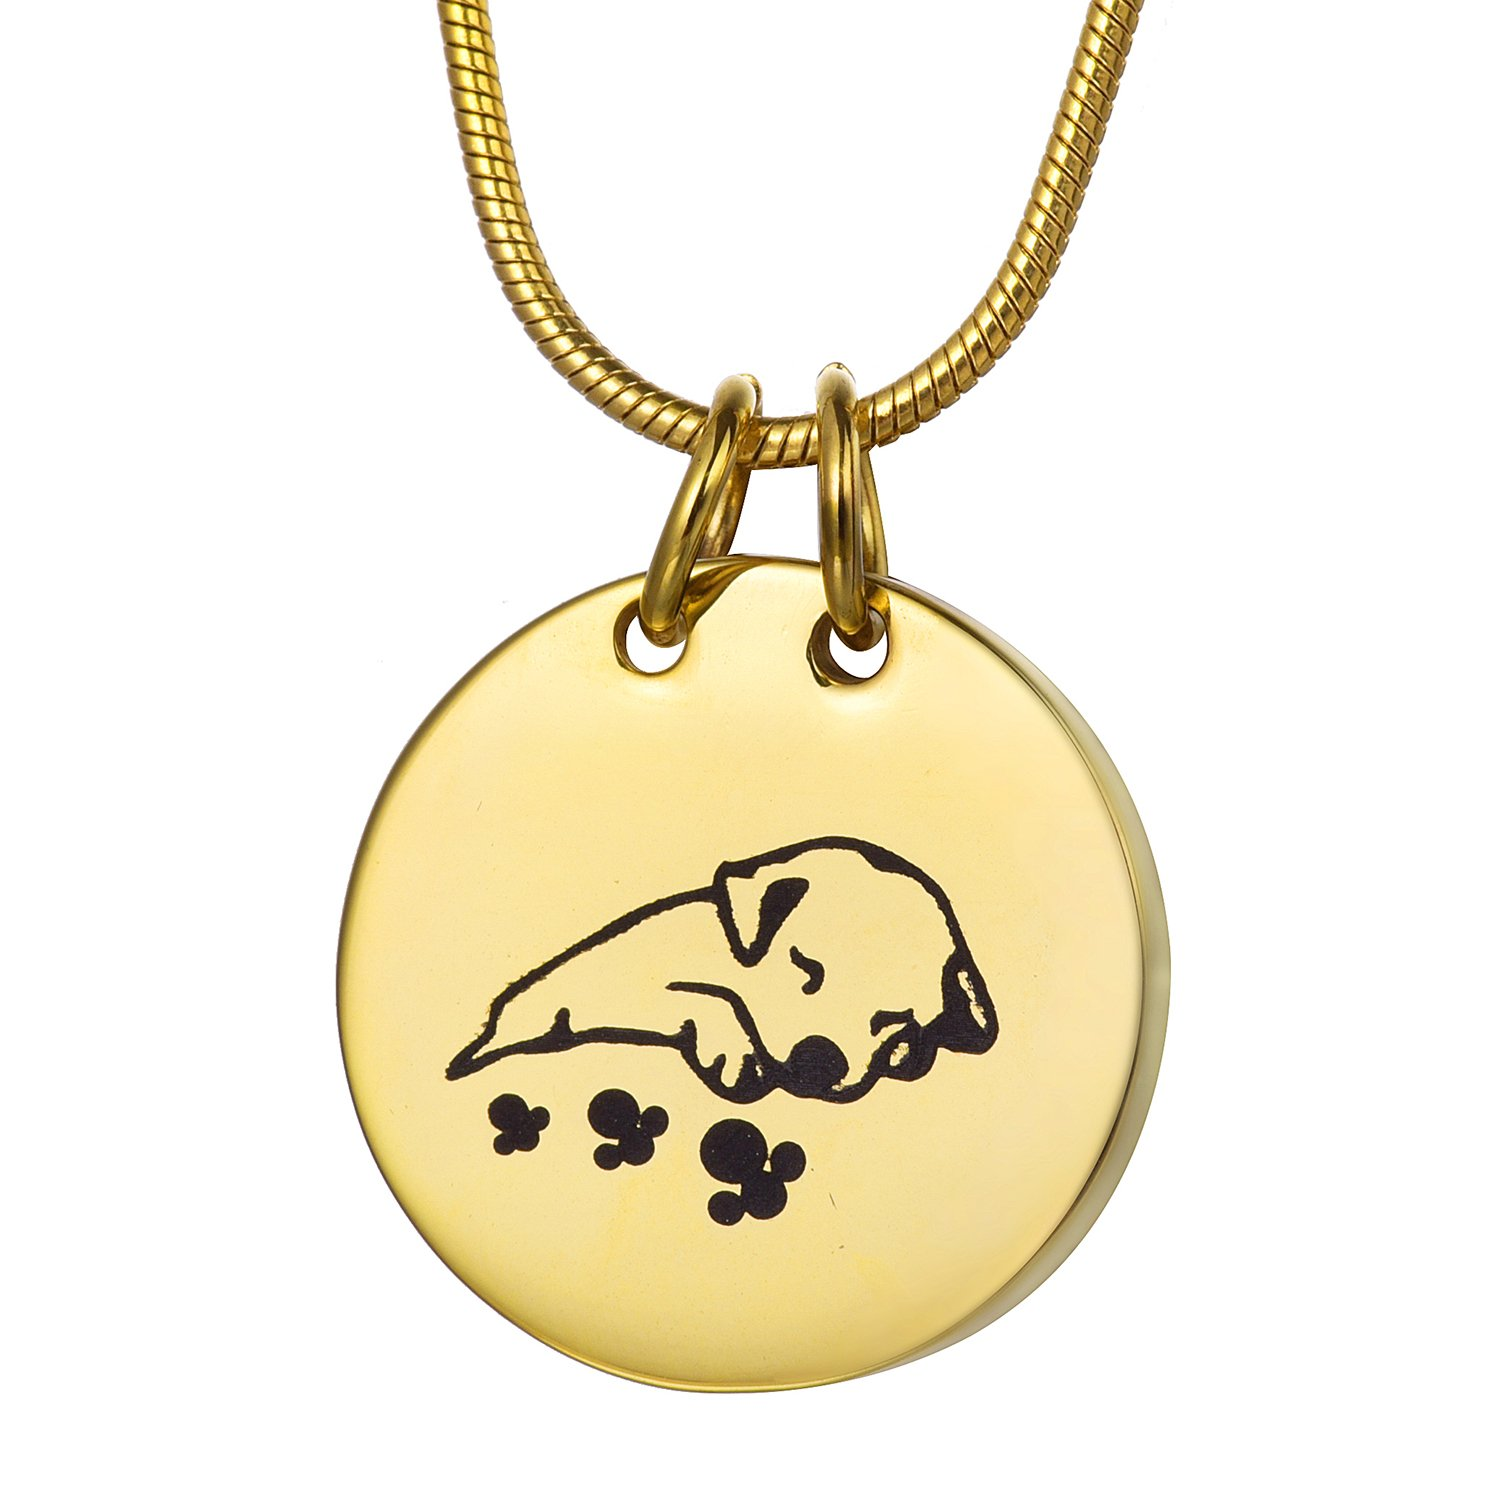 COCO Park Gold Engraving Sleeping Dog Pet Cremation Necklace Memorial Ashes Urn Pendant Jewelry Keepsake